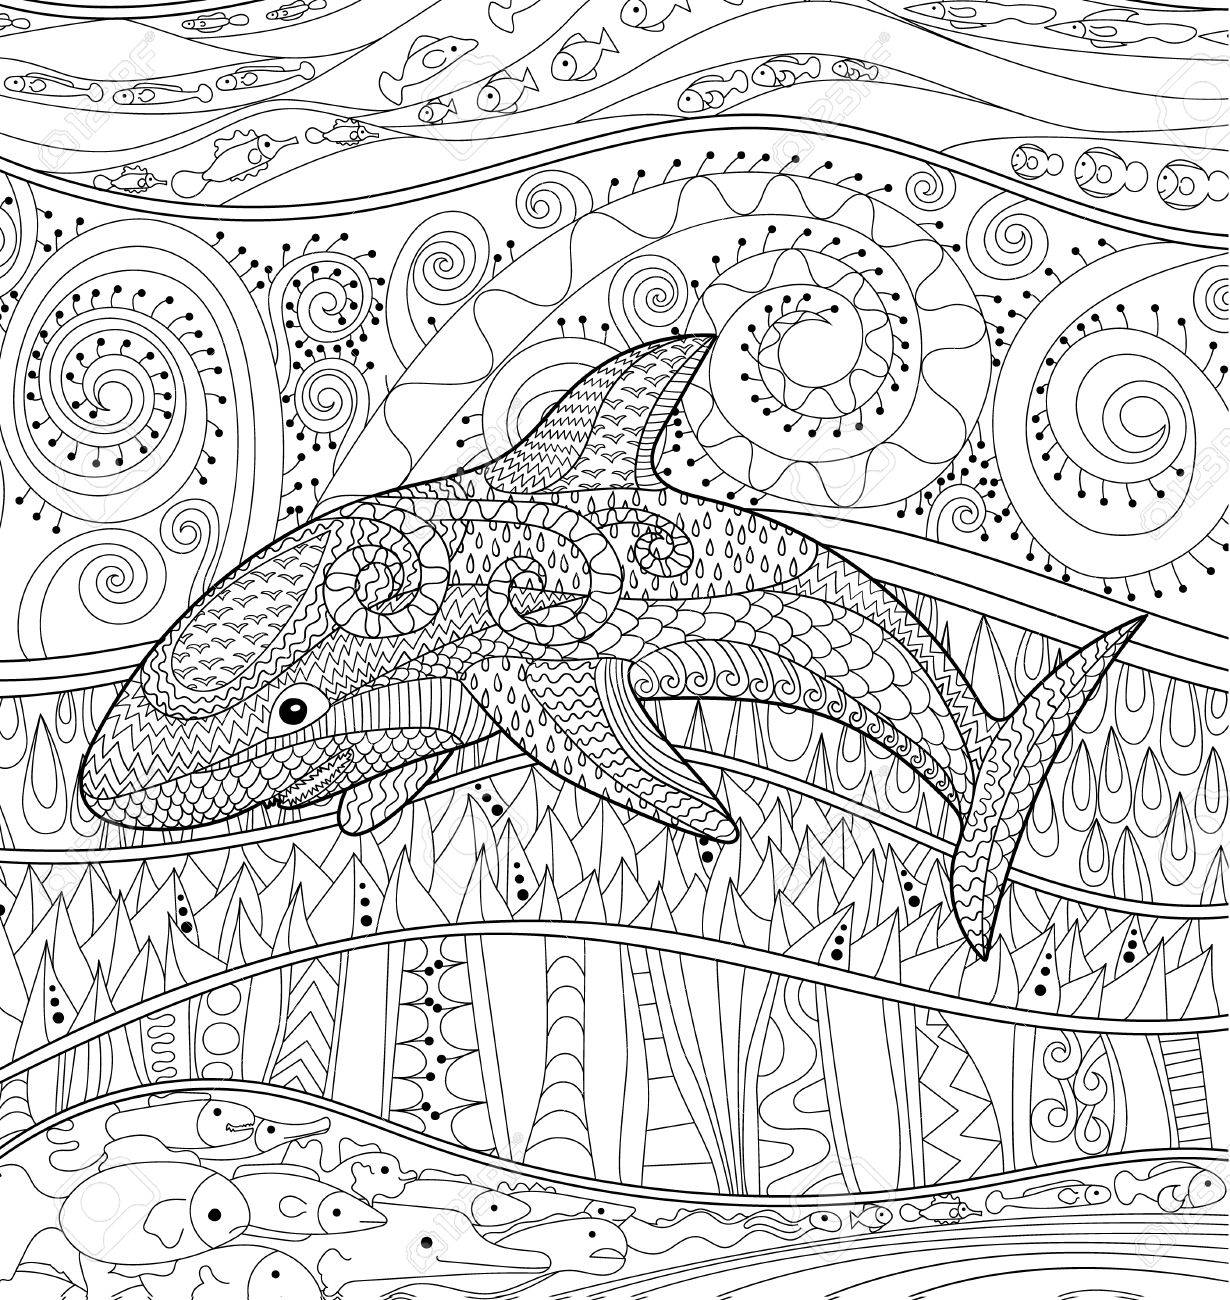 Happy shark with high details. Adult antistress coloring page...